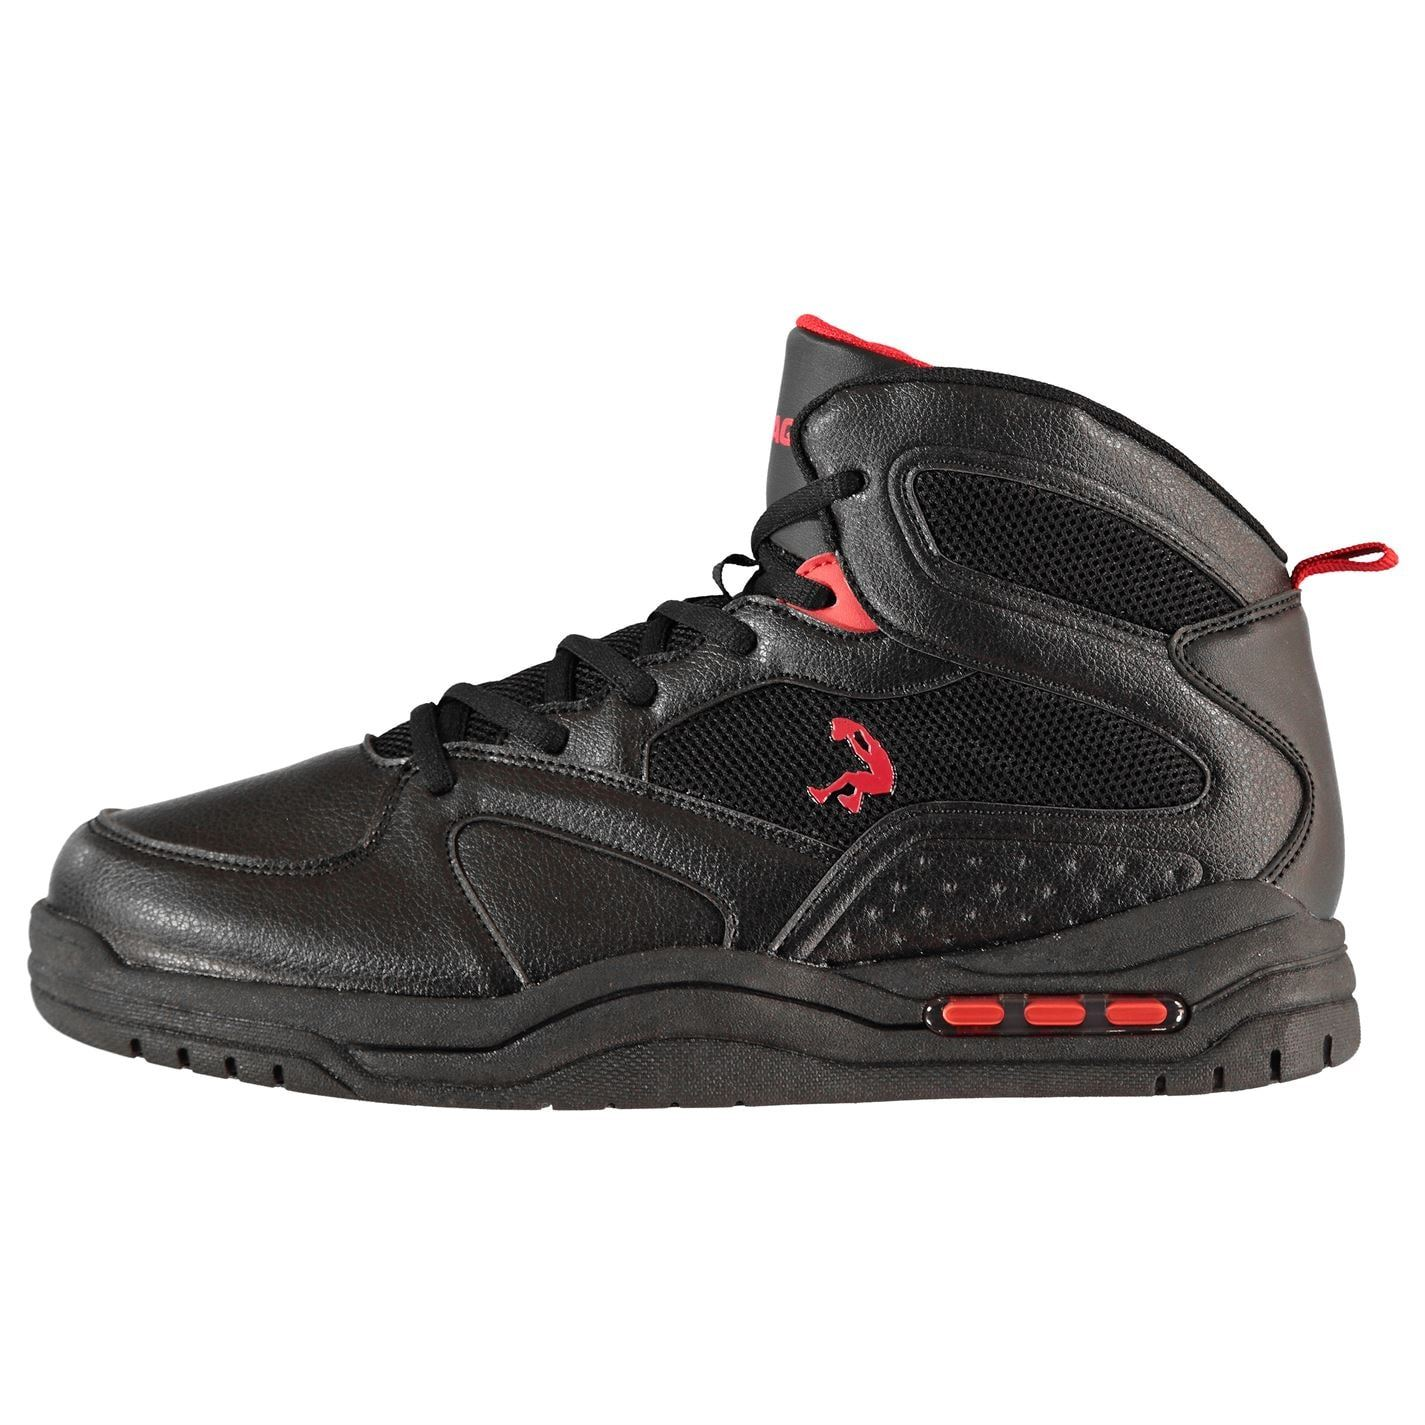 SHAQ Mens Ceptor Basketball Trainers Sports Shoes